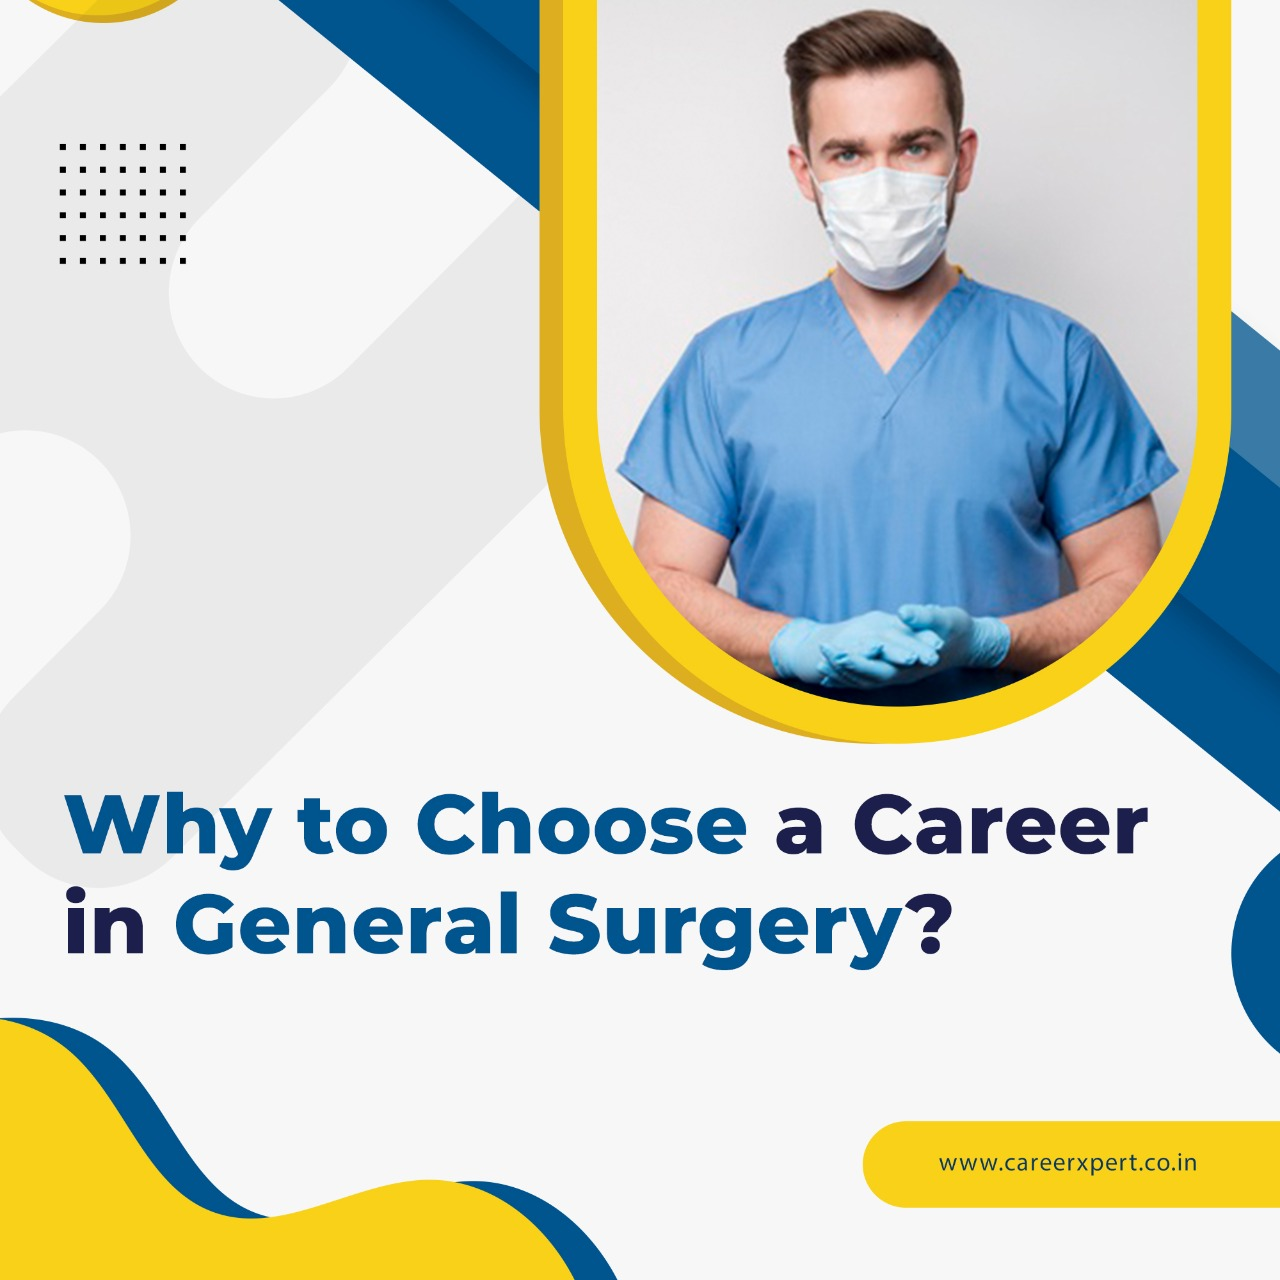 Why to choose a career in general surgery